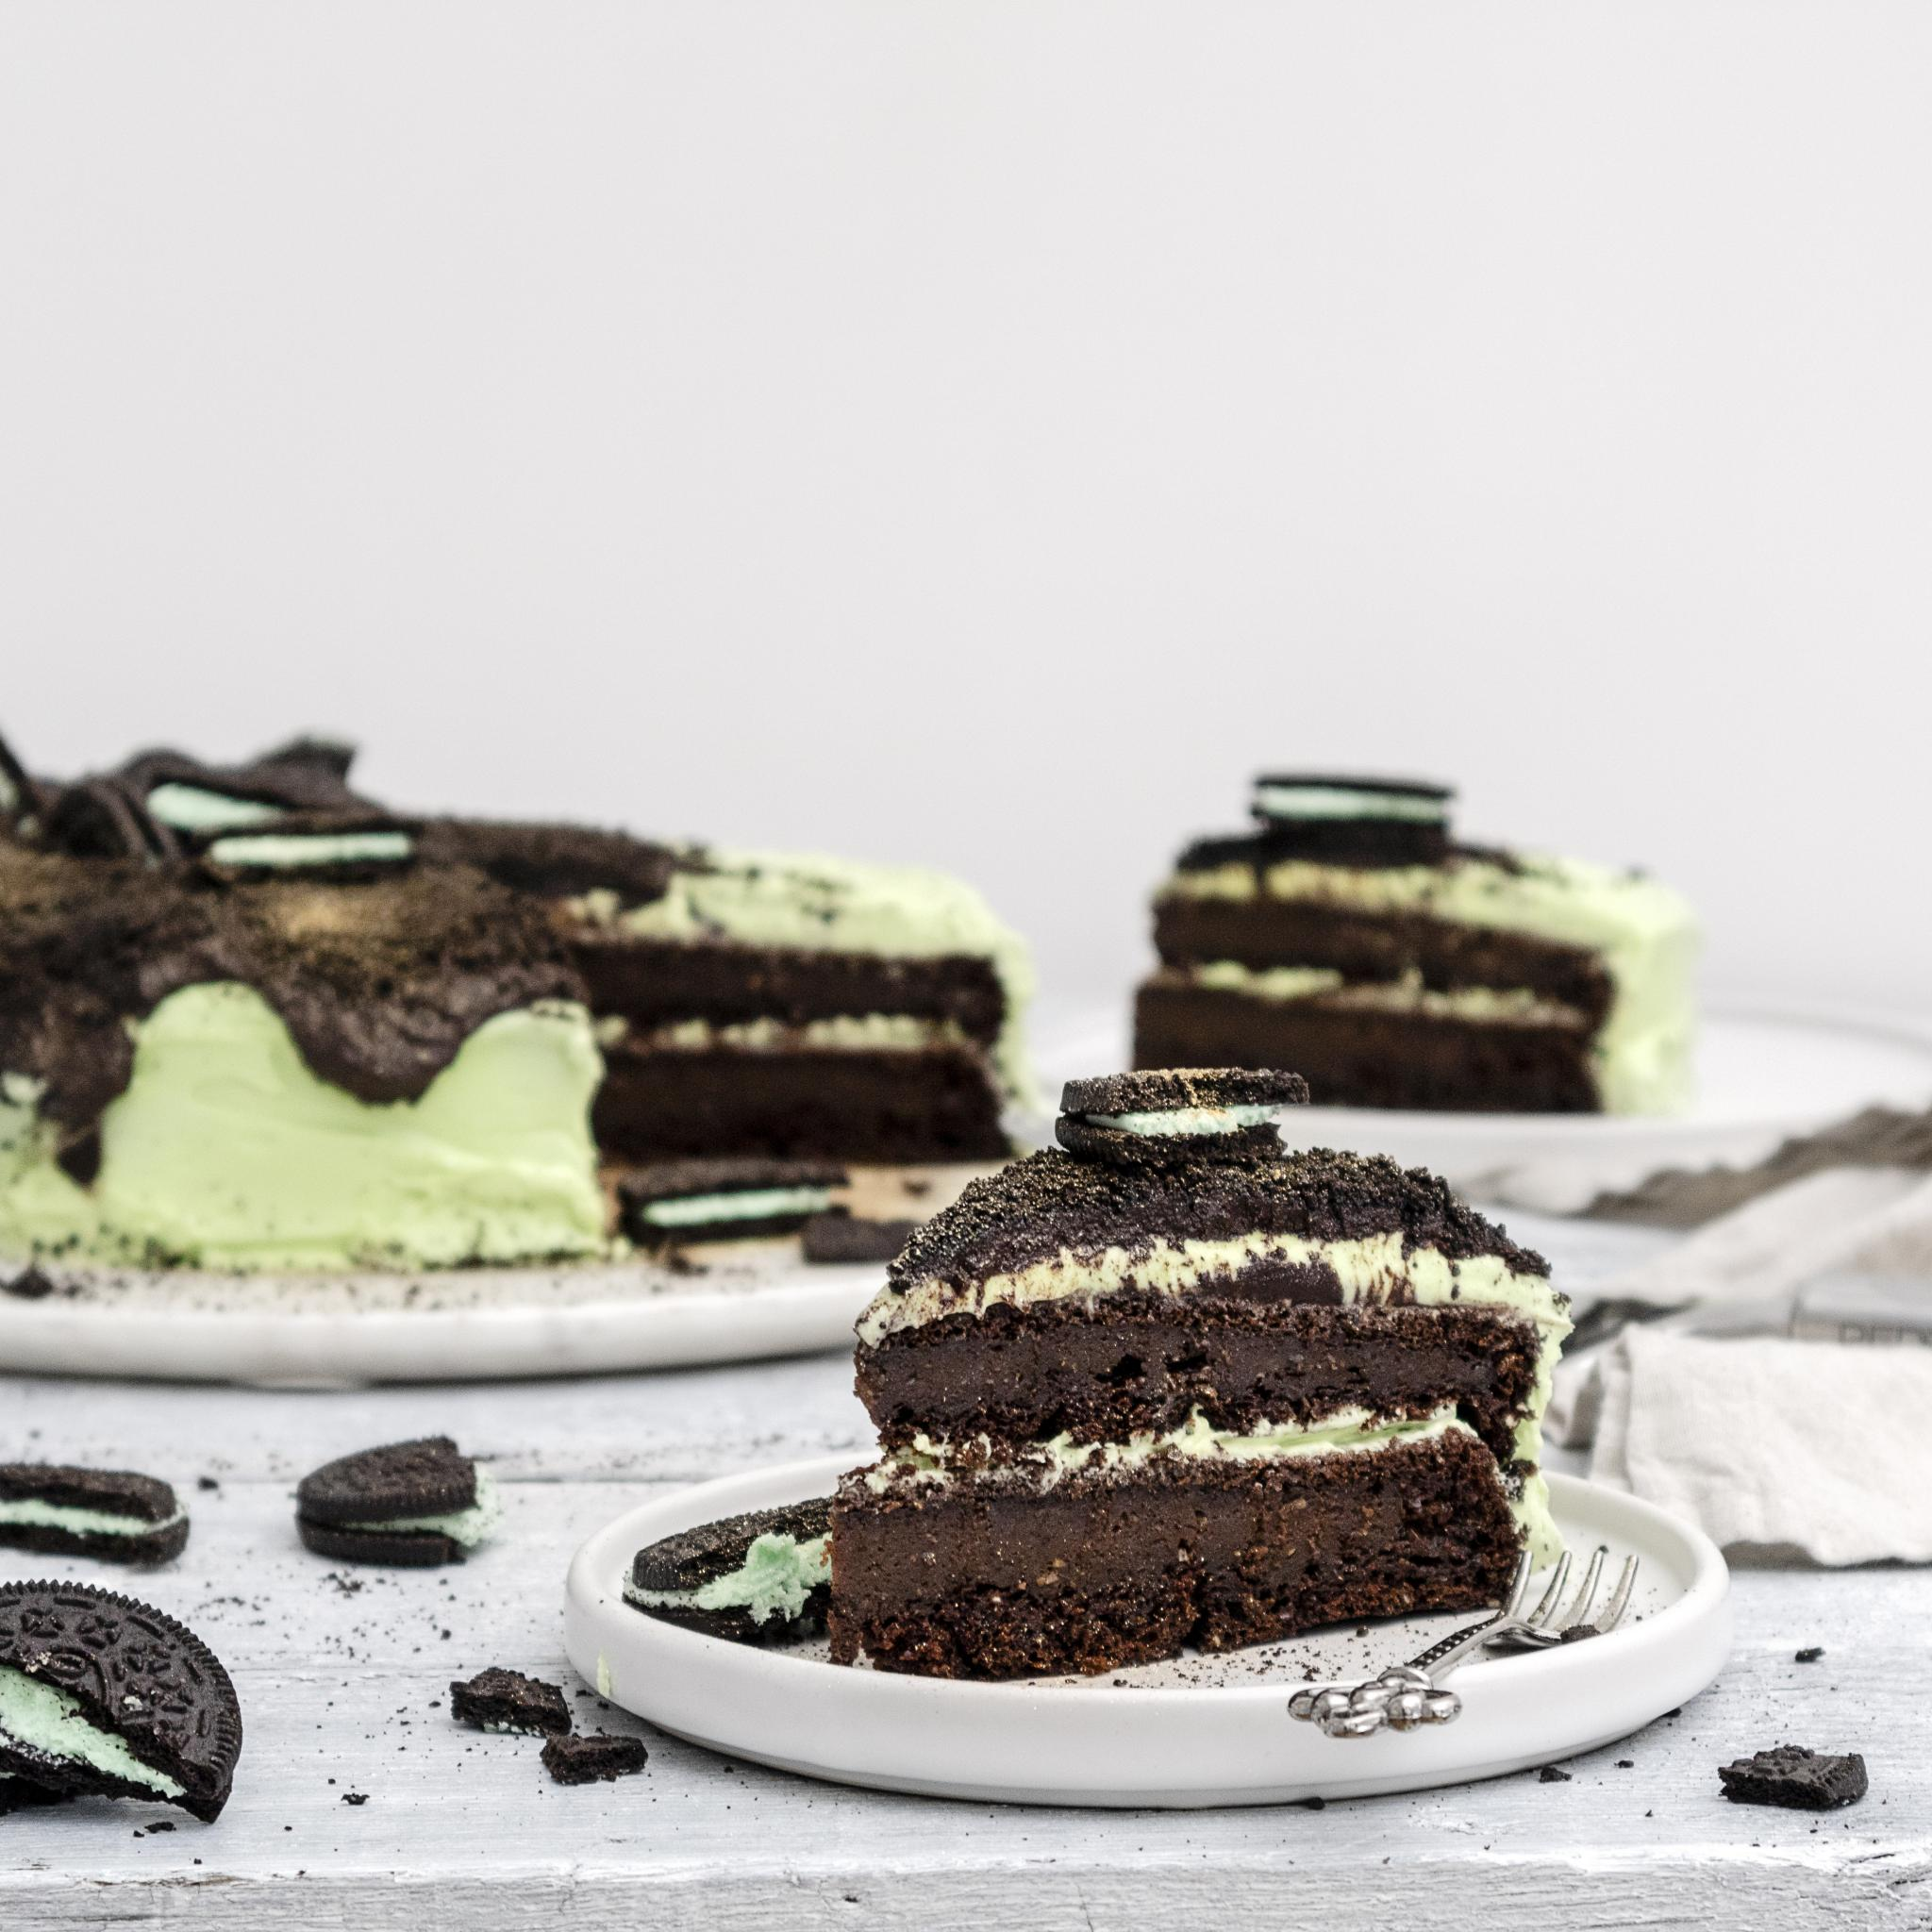 Vegane Oreo Torte Vegan Chocolate Mint Oreo Cake Recipe Romy London